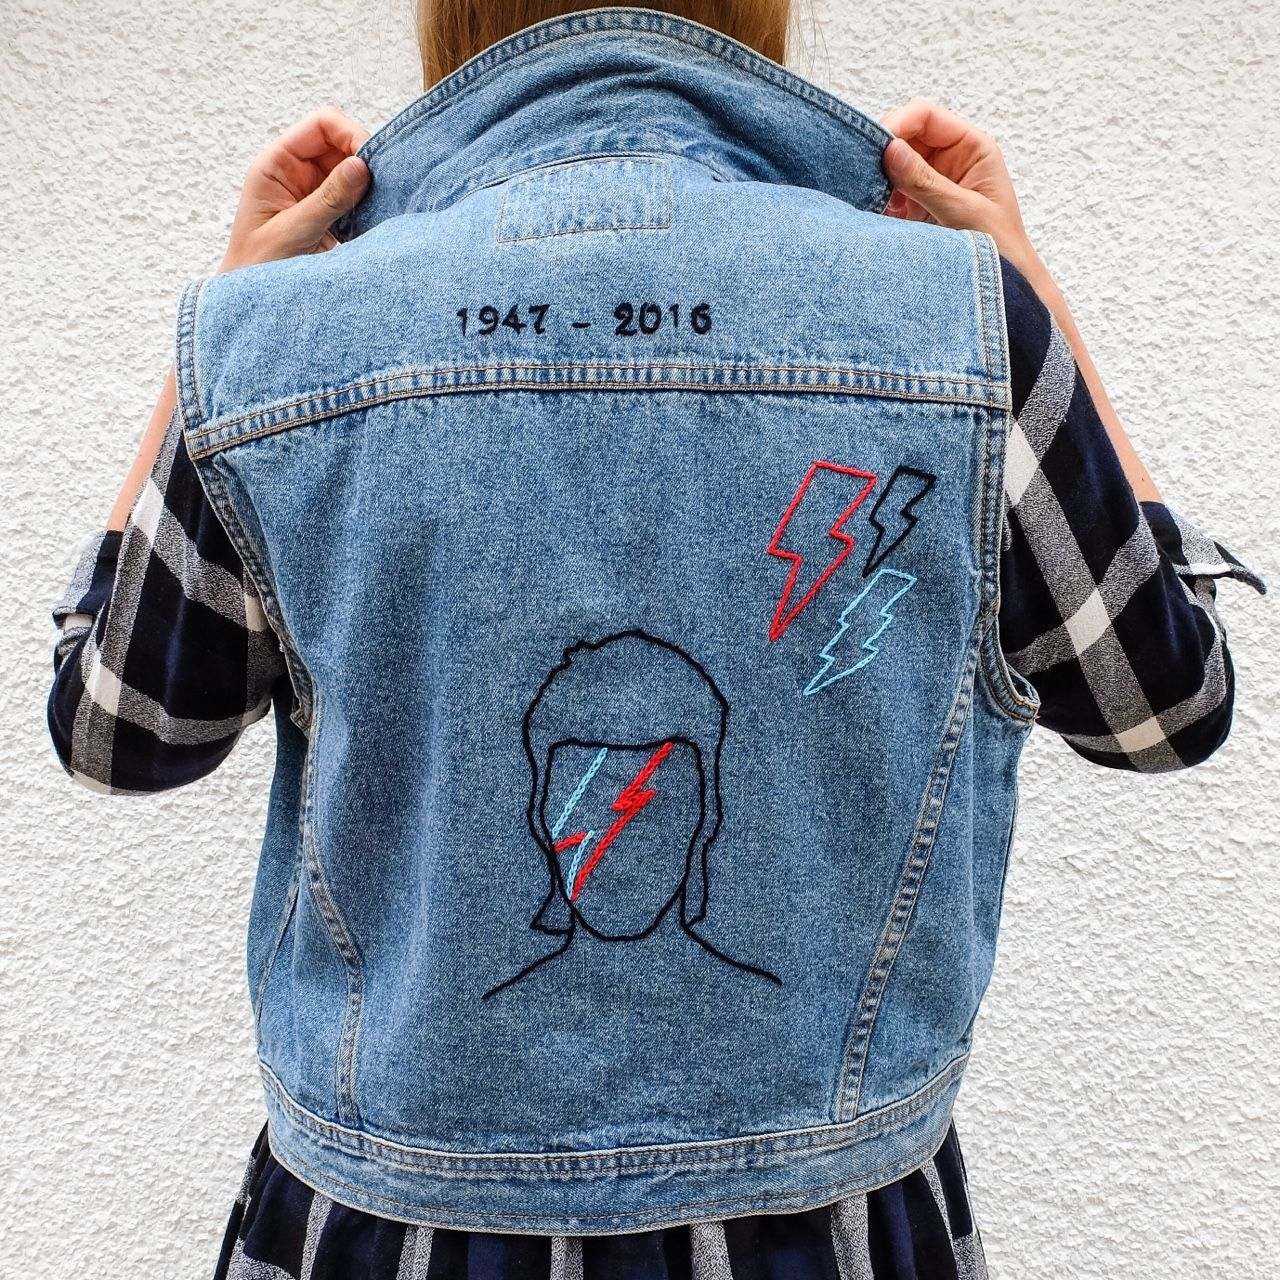 05c616a029 Hand Embroidered Bowie Tribute Levi Vest. For all my ✨Star Children✨ this  rad Levi Denim Vest is the ultimate tribute to my idol